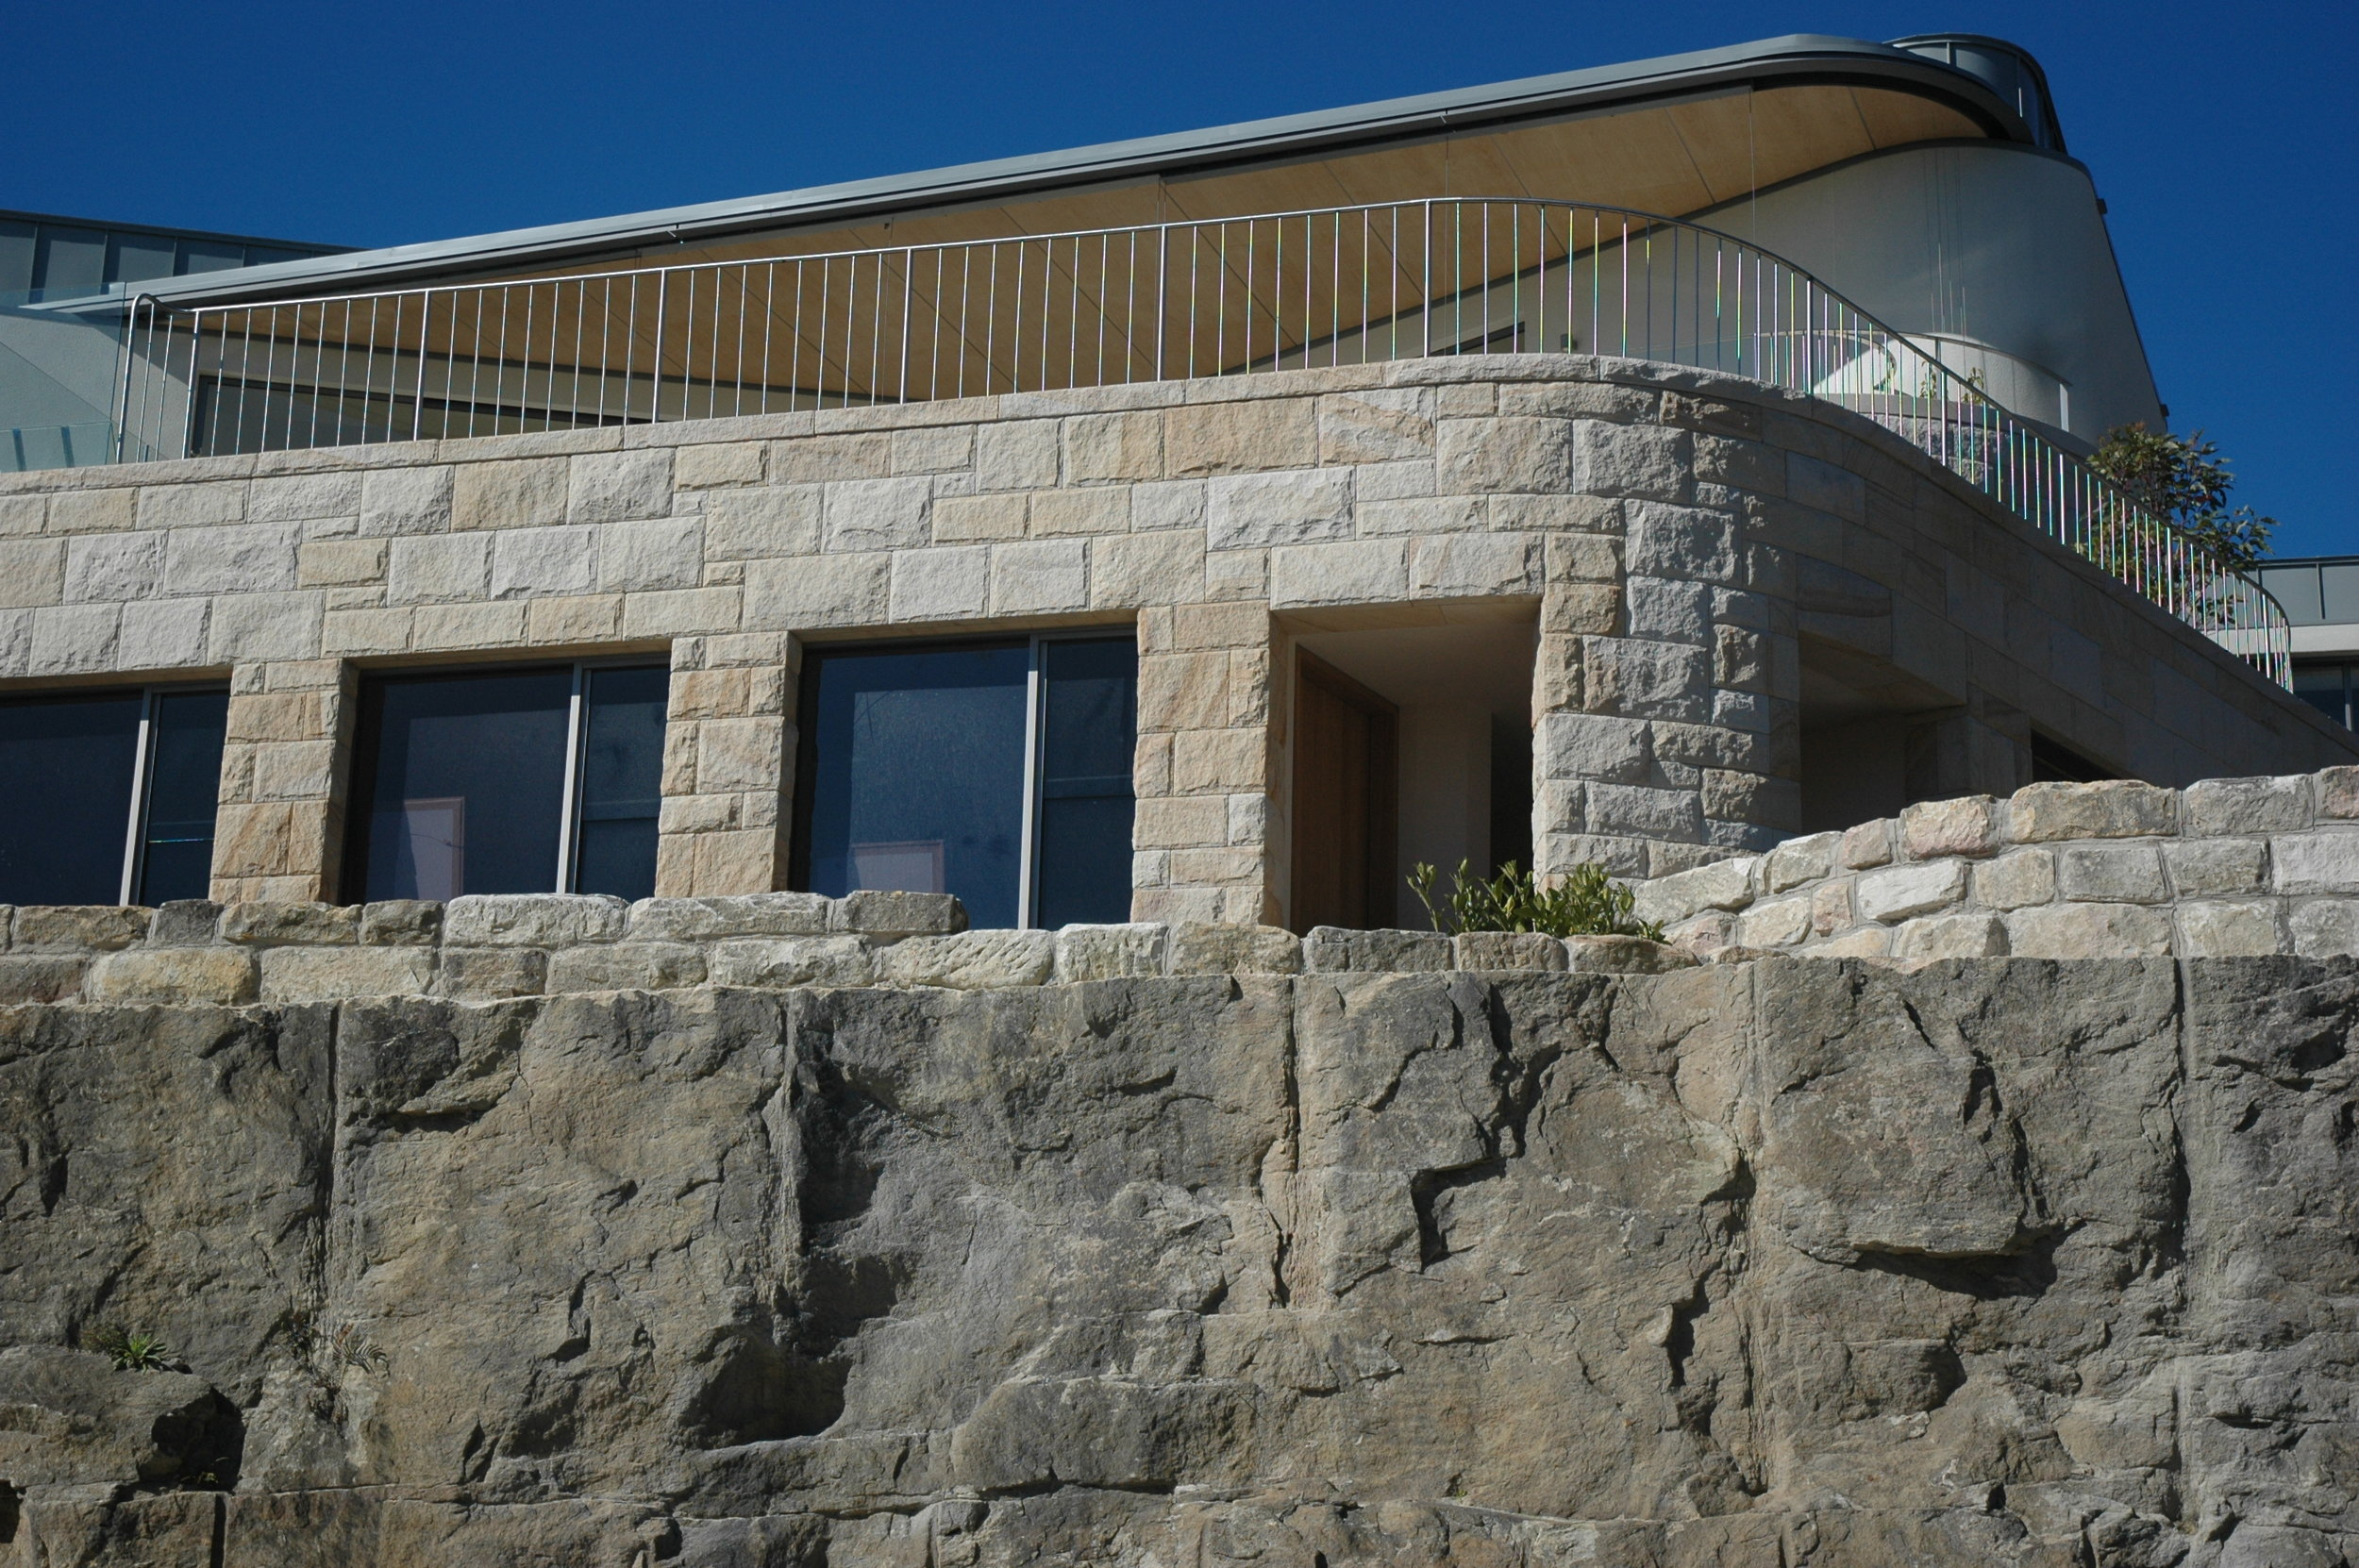 white-very light brown select- Random Square ballast cladding with curved detail - cliff face view - Artistry in sandstone.JPG